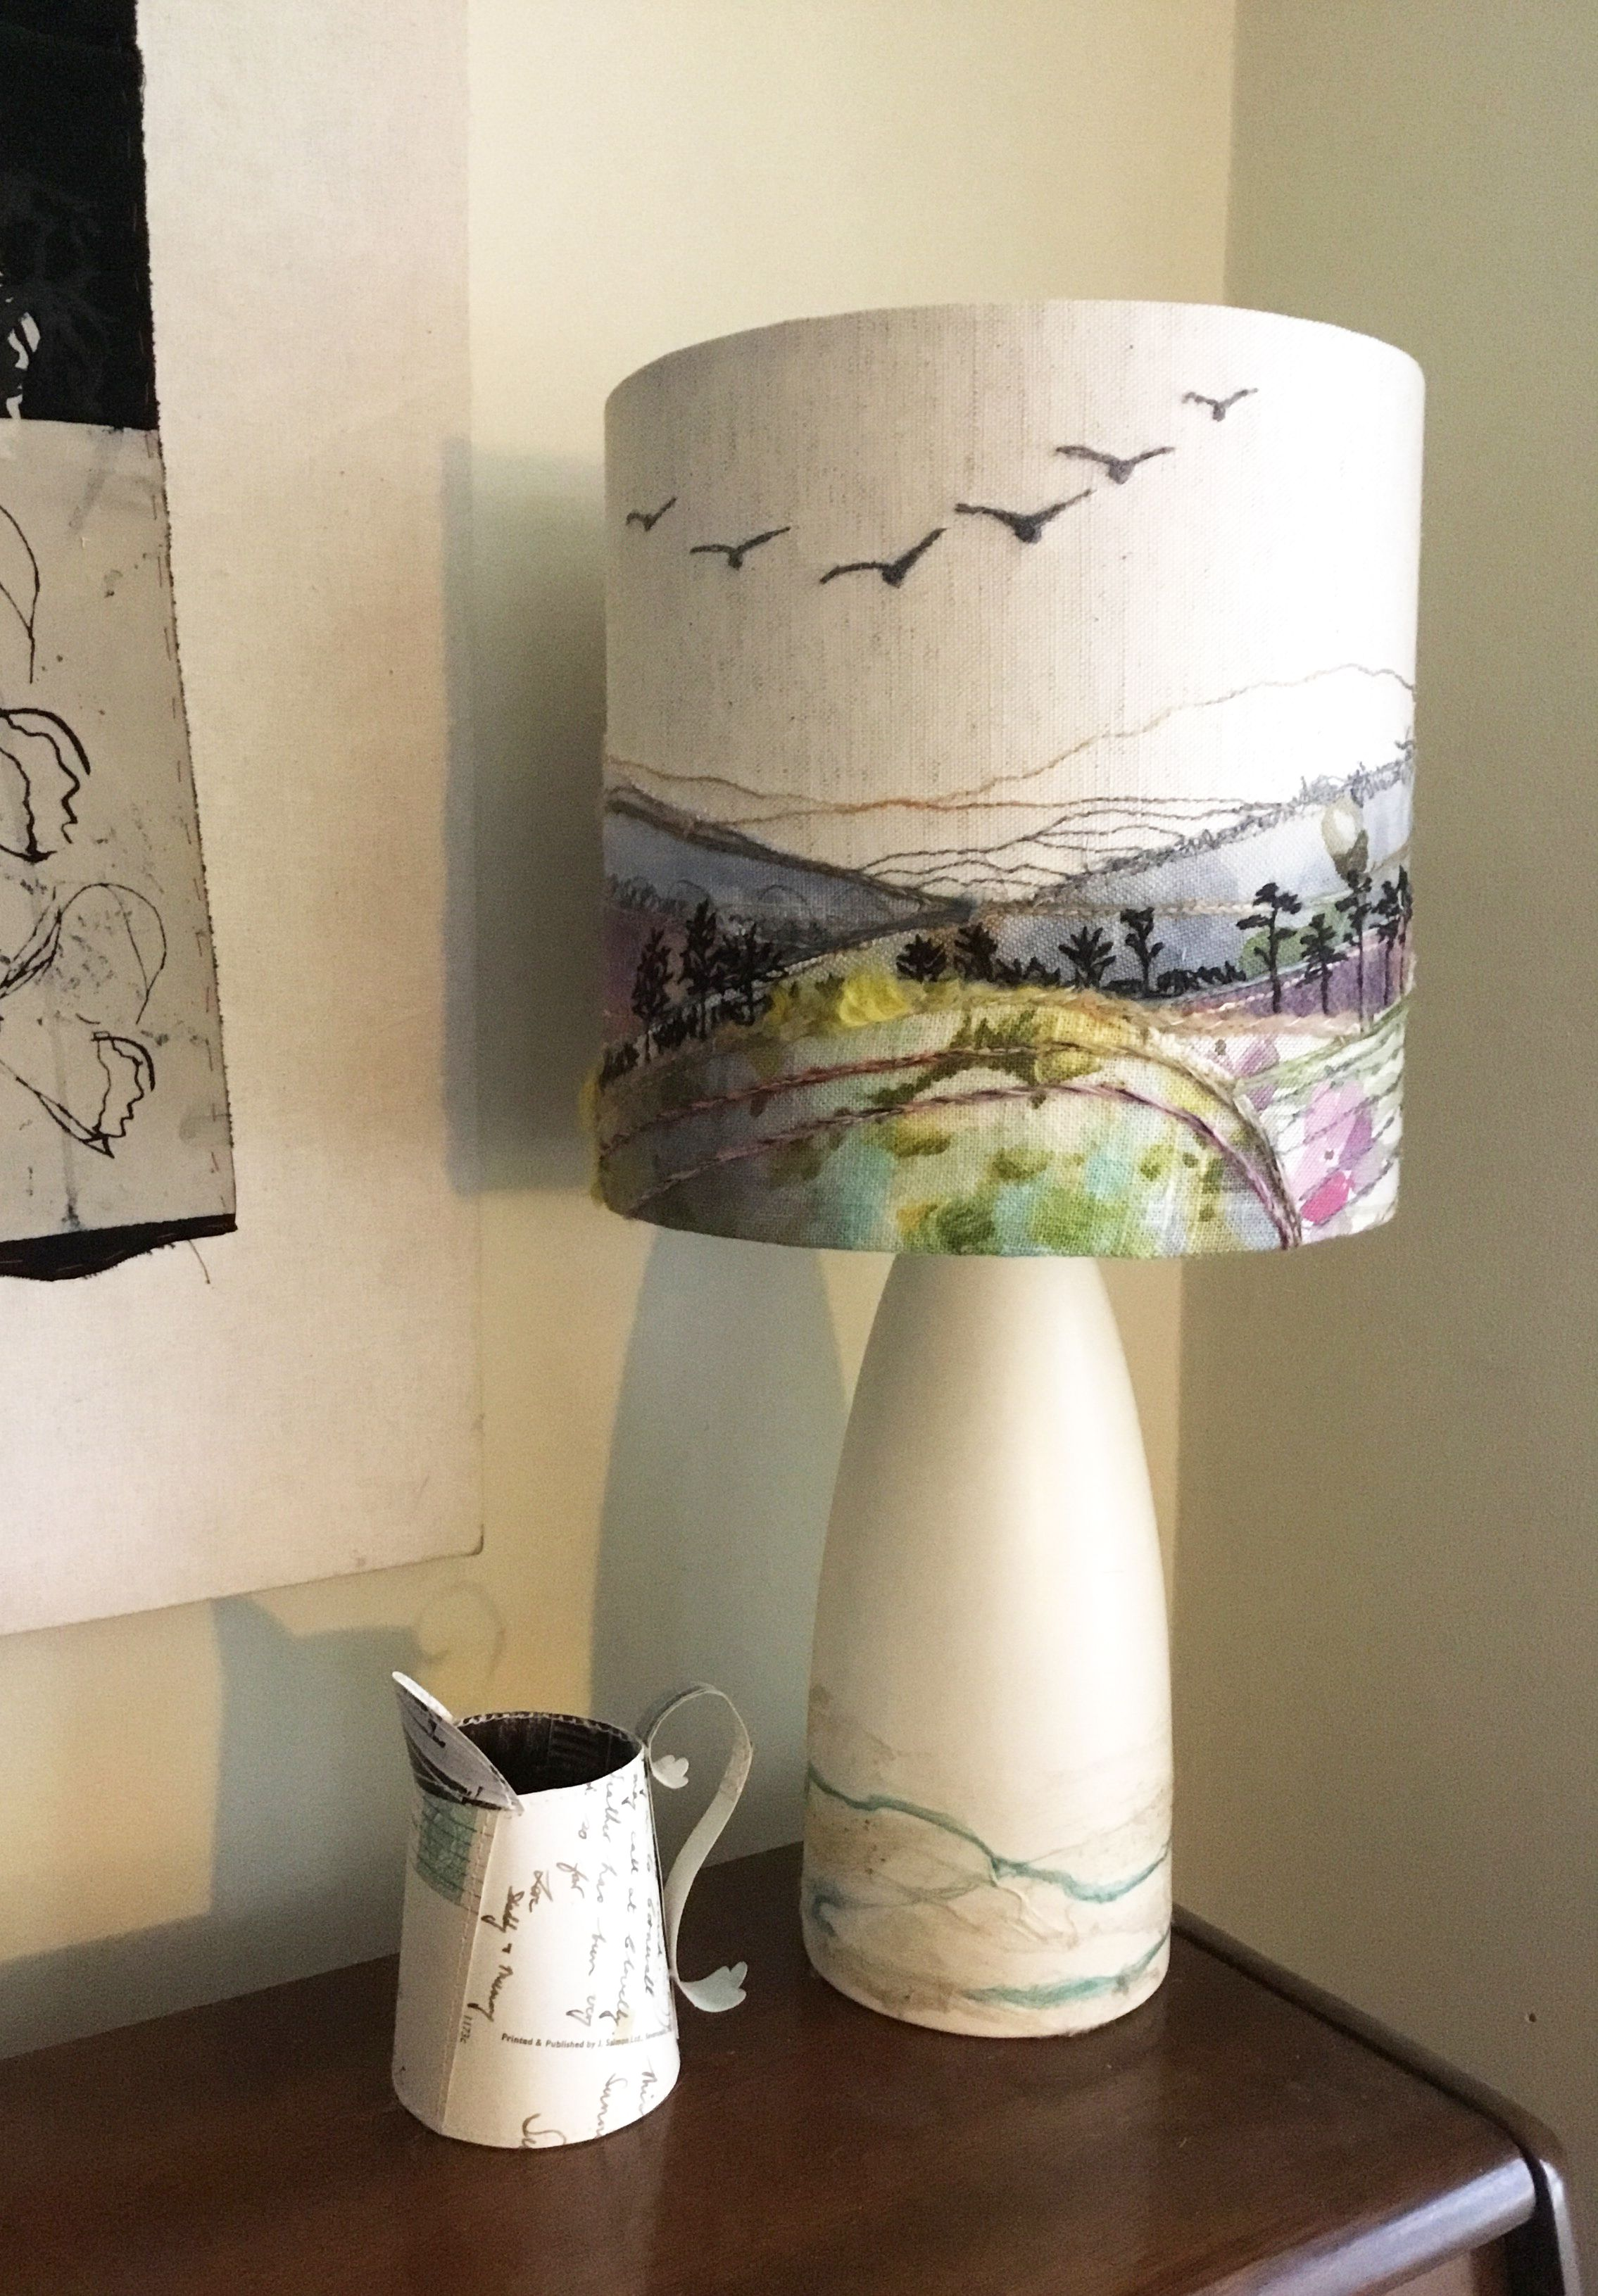 Painting A Lampshade Glamorous British Landscape Lampshade With Embroidery Of Geese Measuring Review